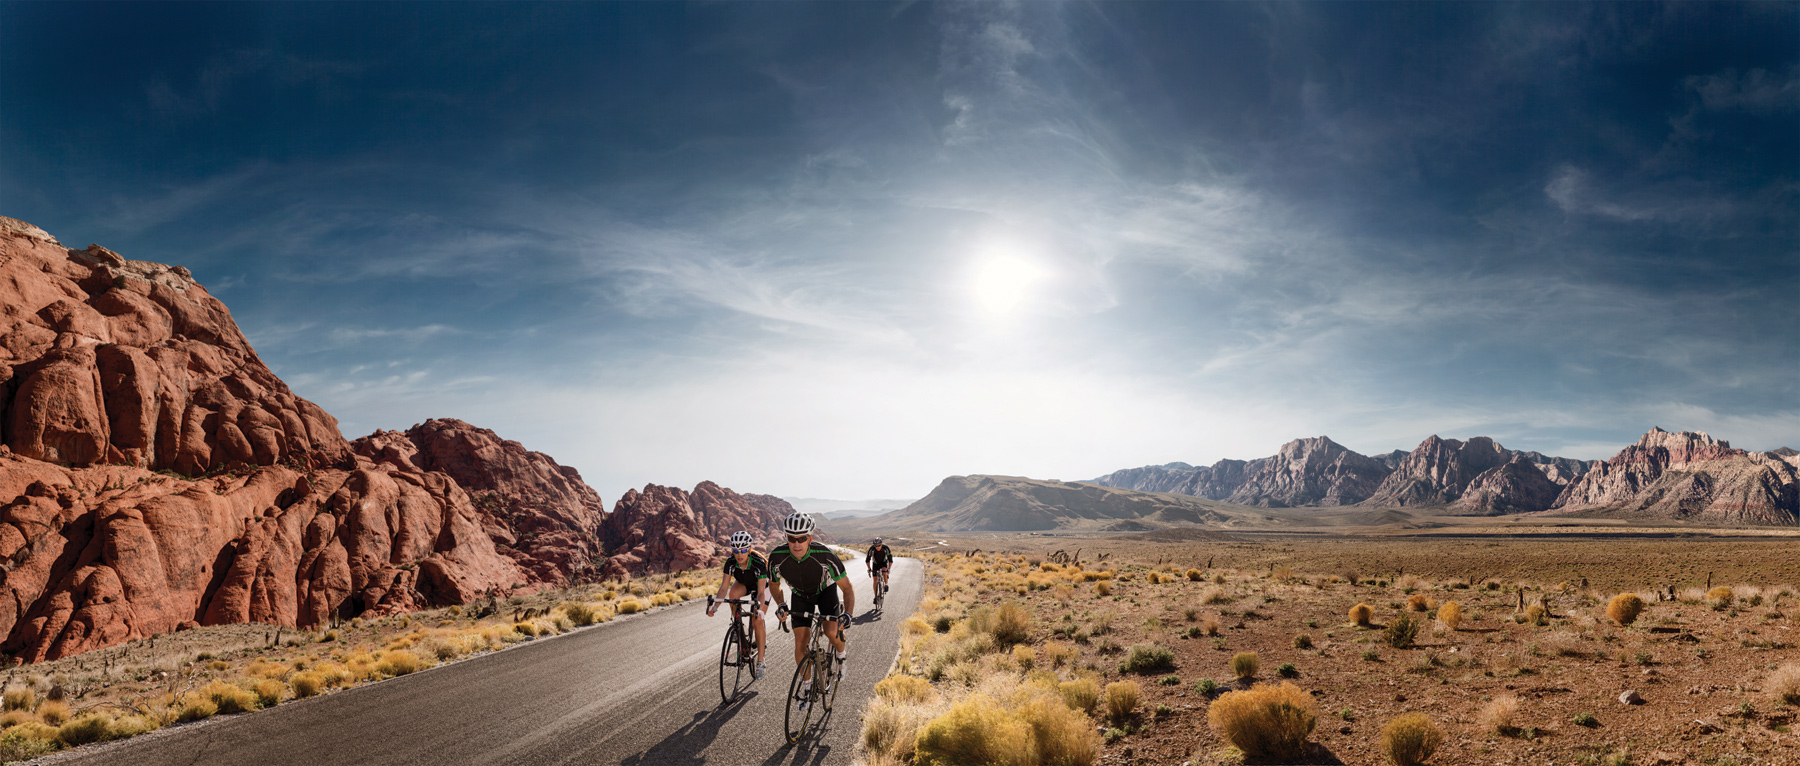 Enjoy a bike ride through Red Rock National Conservation Area